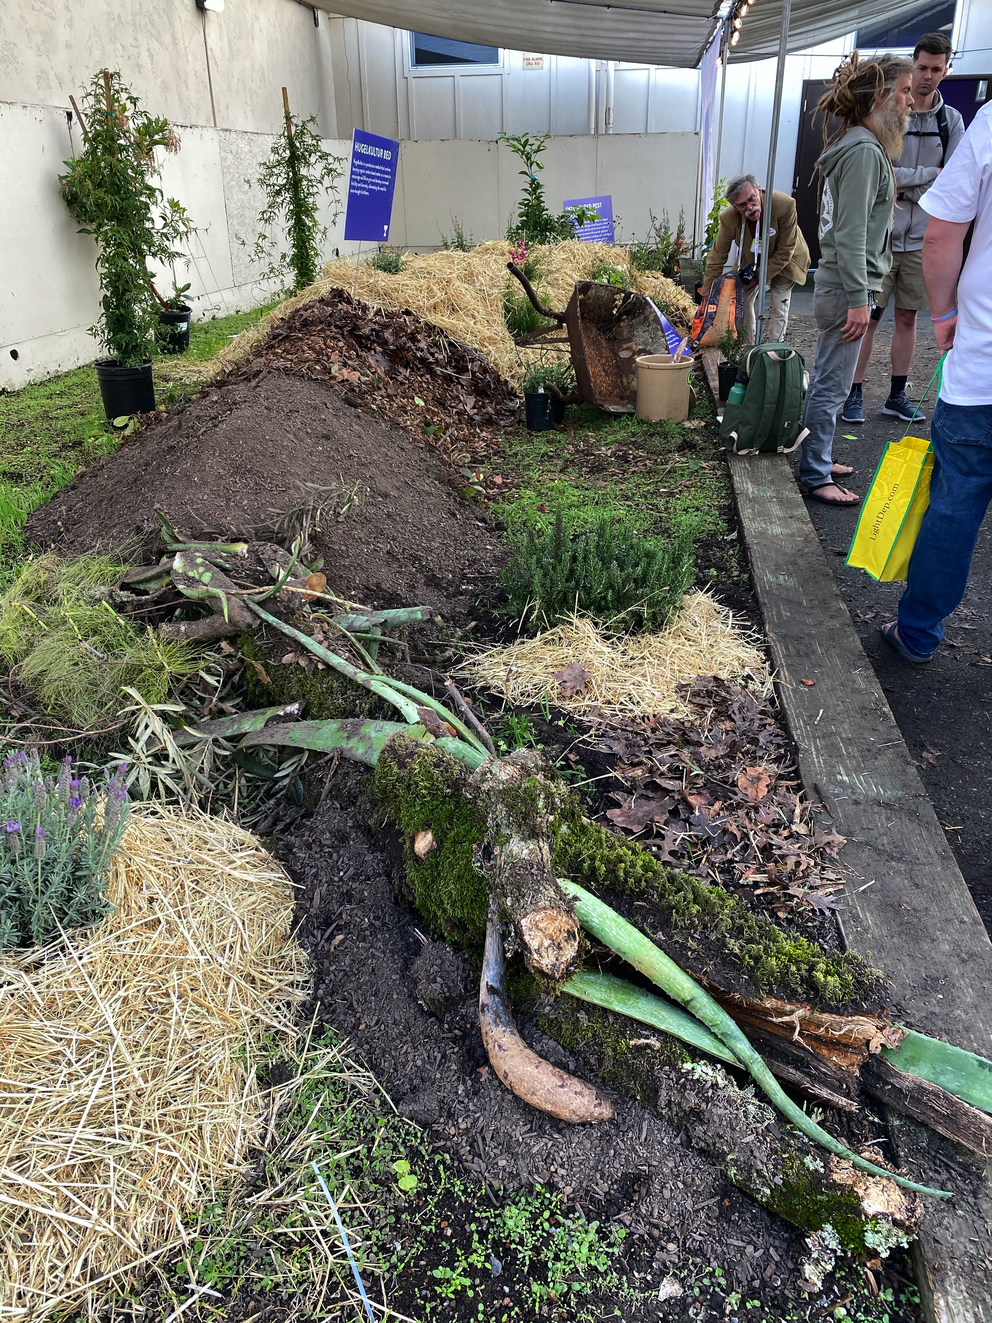 A demonstration hugelkultur garden at the Santa Rosa fairgrounds, Dec. 2019. Hugelkultur is a German practice that uses dead trees to create garden beds. (Photo by Jeff Lowenfels)